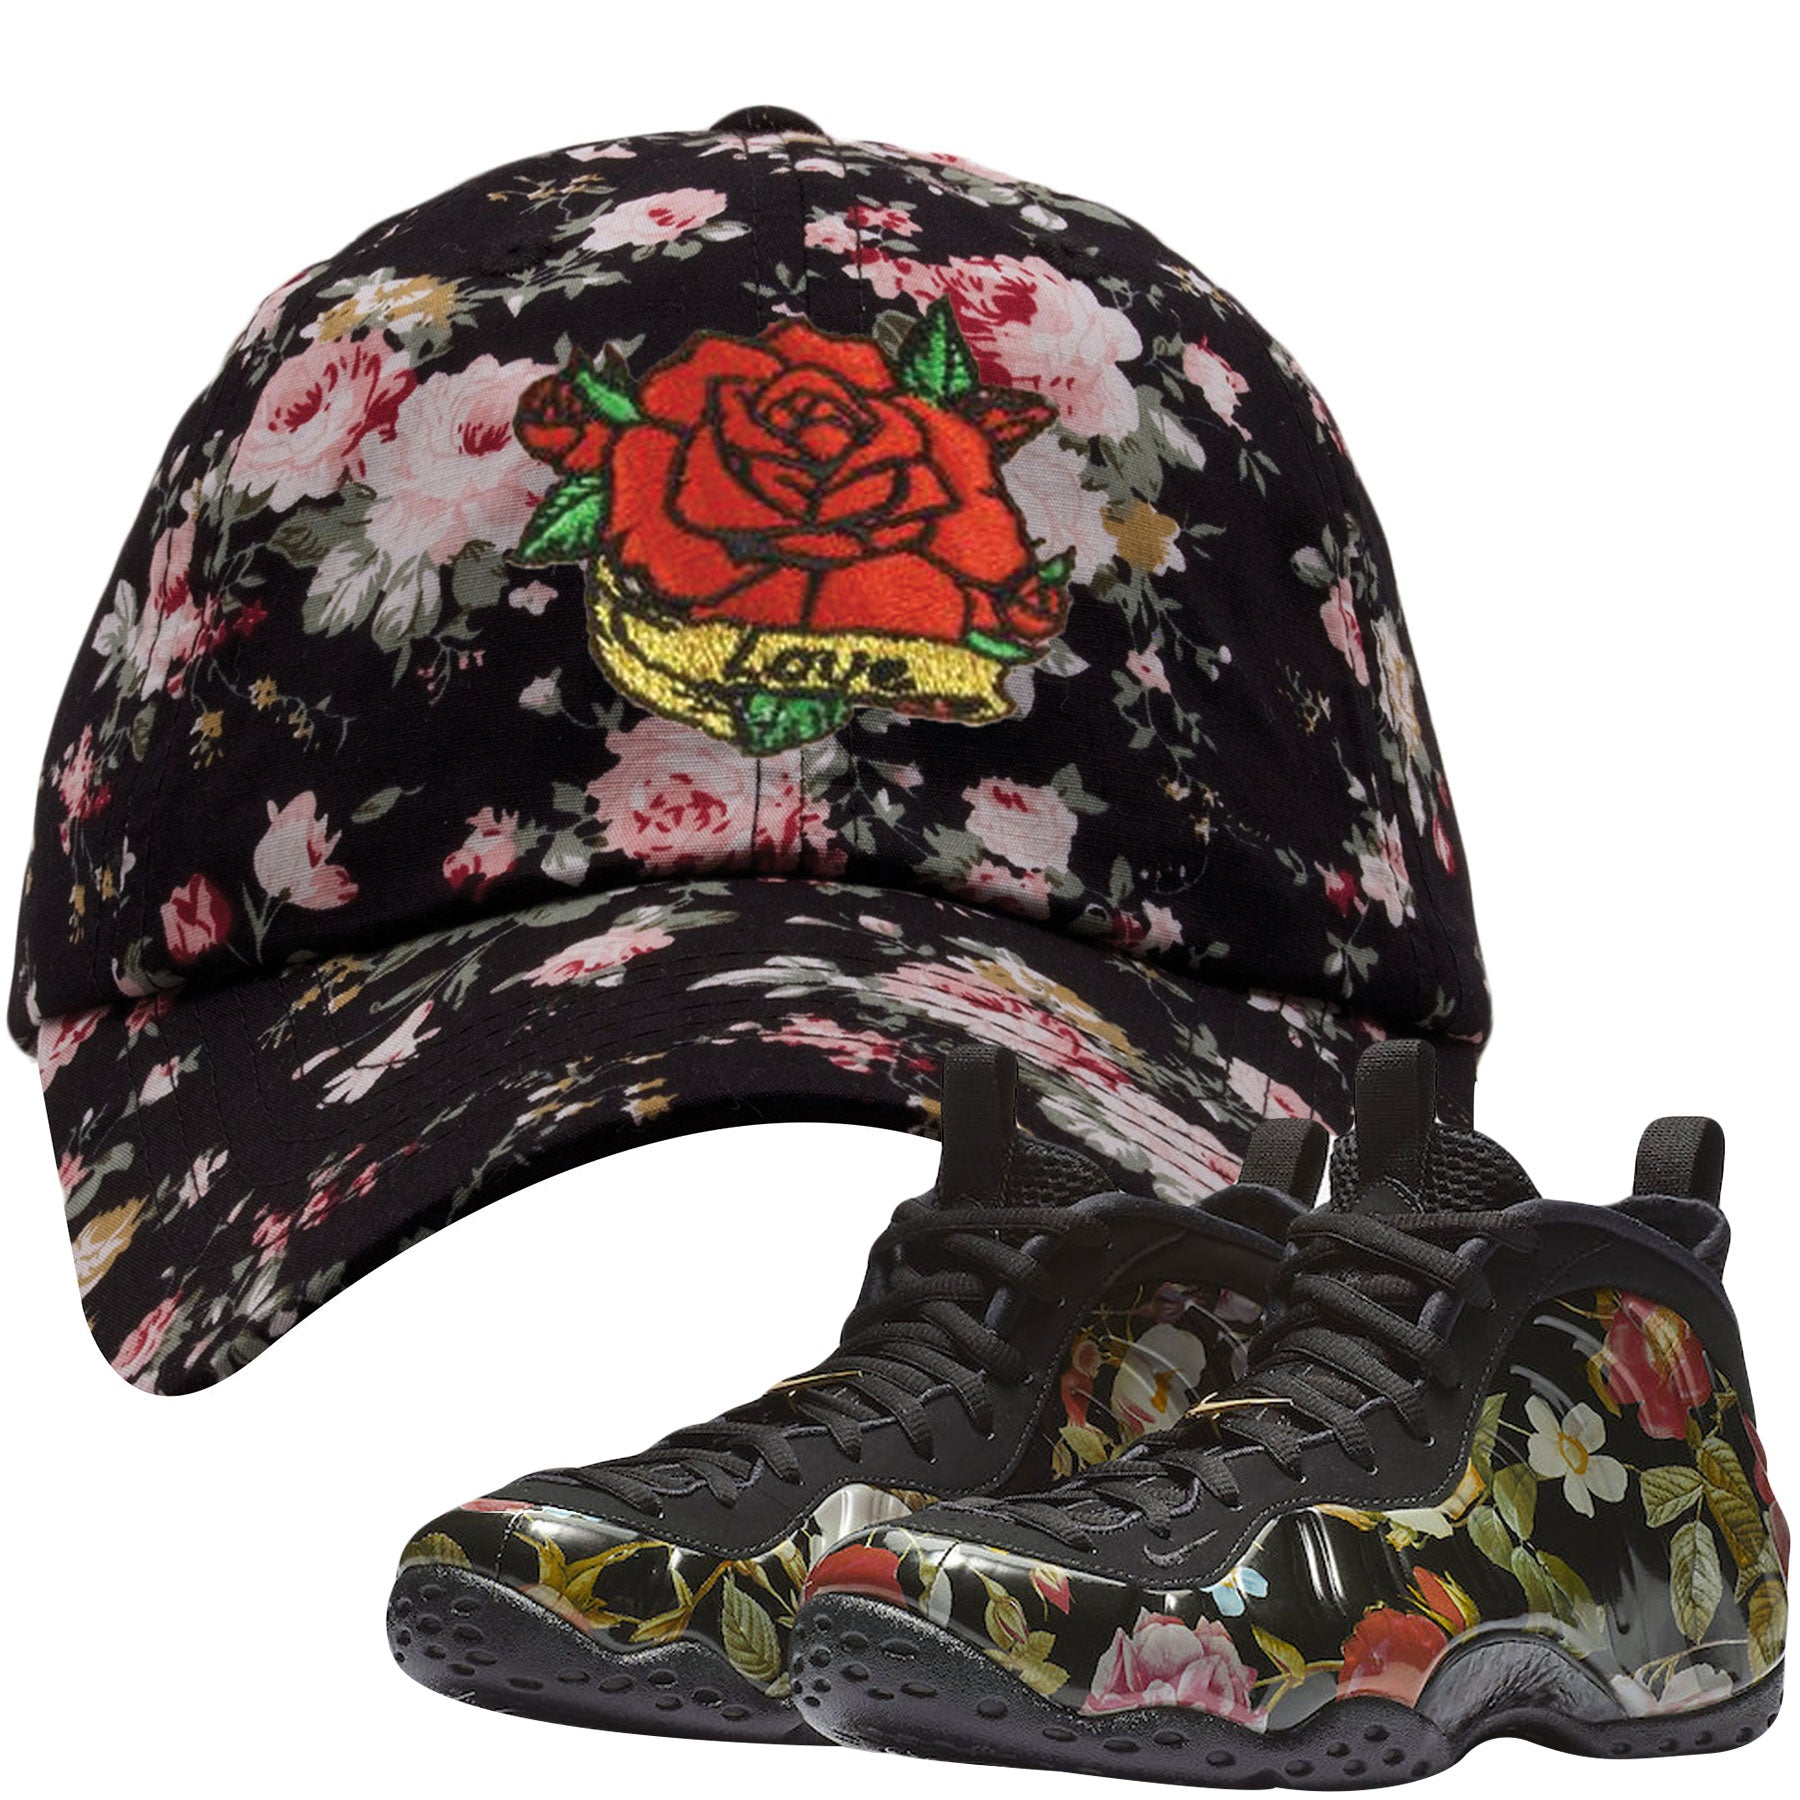 fb15e05db19 Wear this sneaker matching hat to match your Air Foamposite One Floral  sneakers. Match your